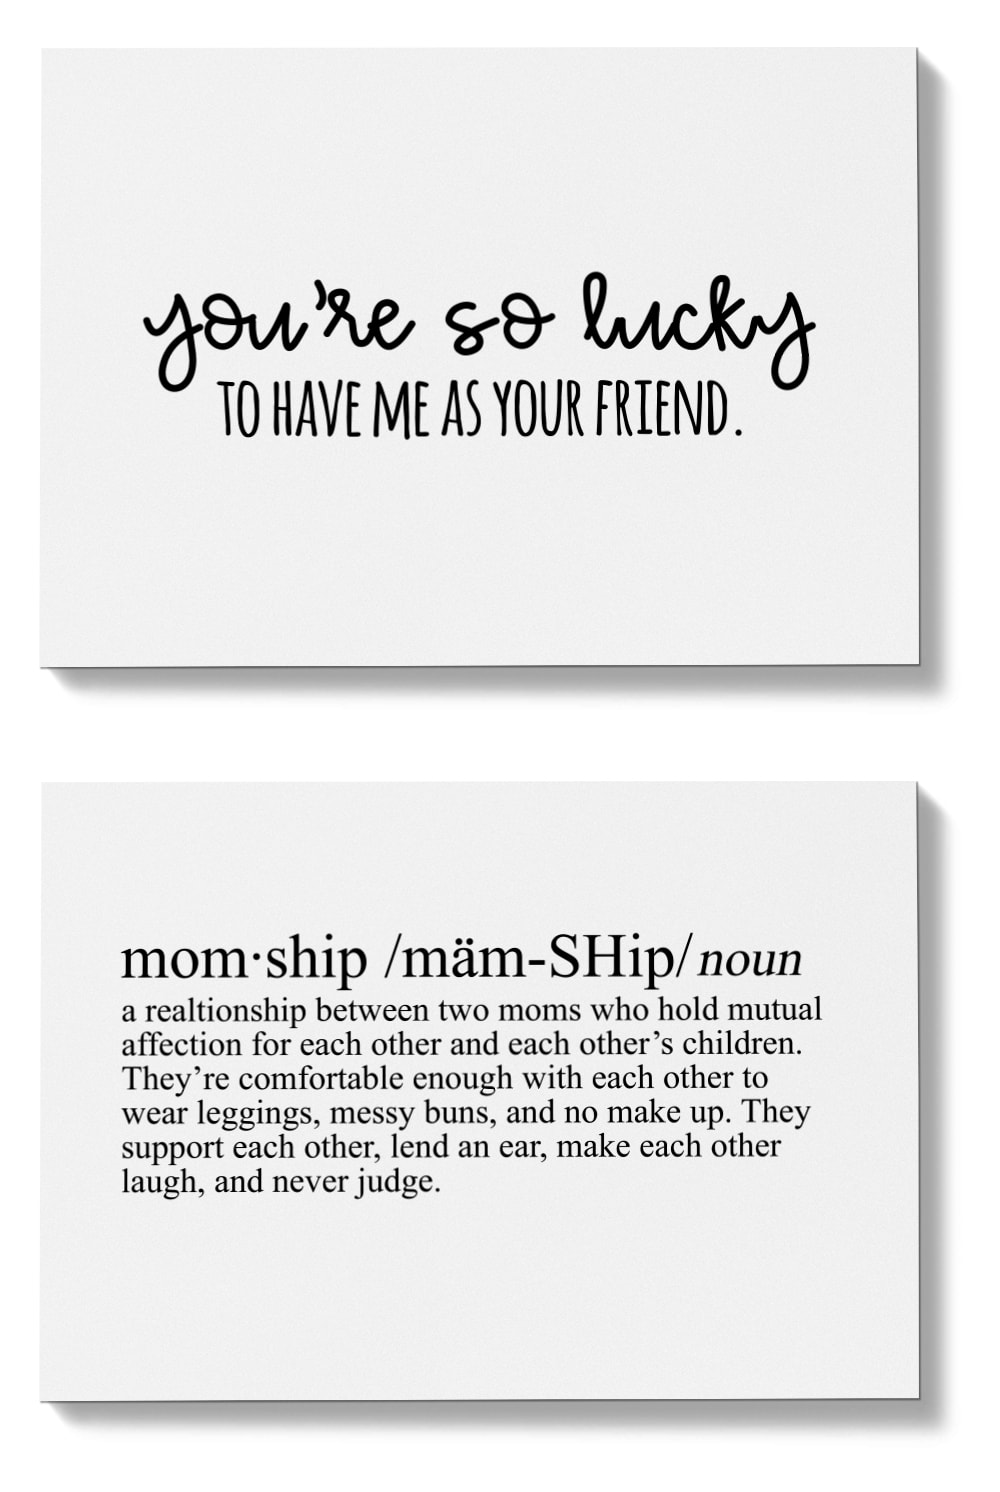 image relating to I Choo Choo Choose You Printable Card called Humorous Playing cards for Friendship - Free of charge Humorous Playing cards for Mates